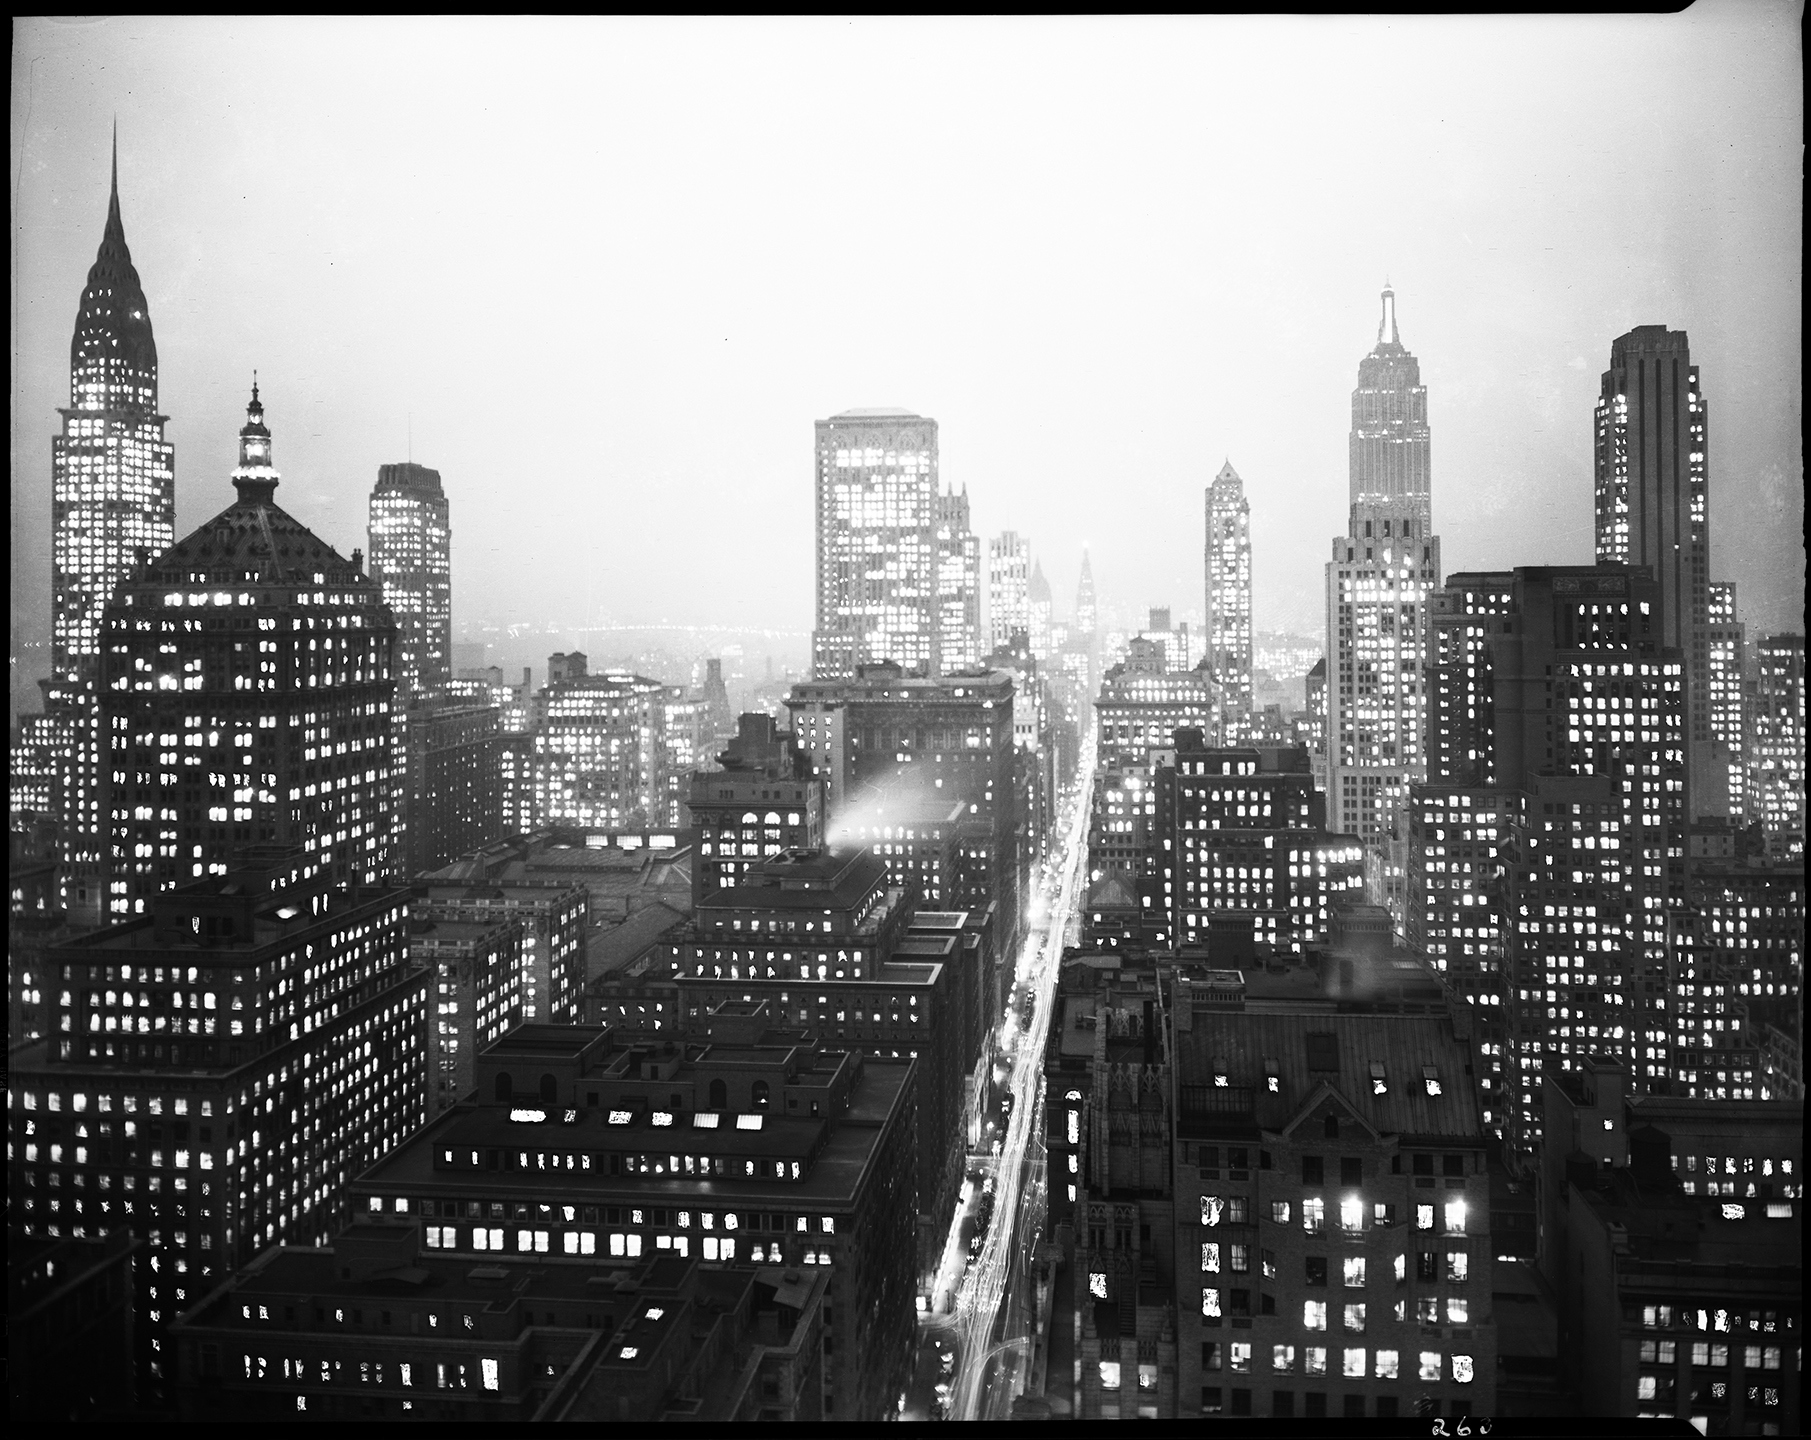 Night View Midtown Manhattan, NYC Municipal Archives.WPA Federal Writers' Project Collection, NYC Municipal Archives.